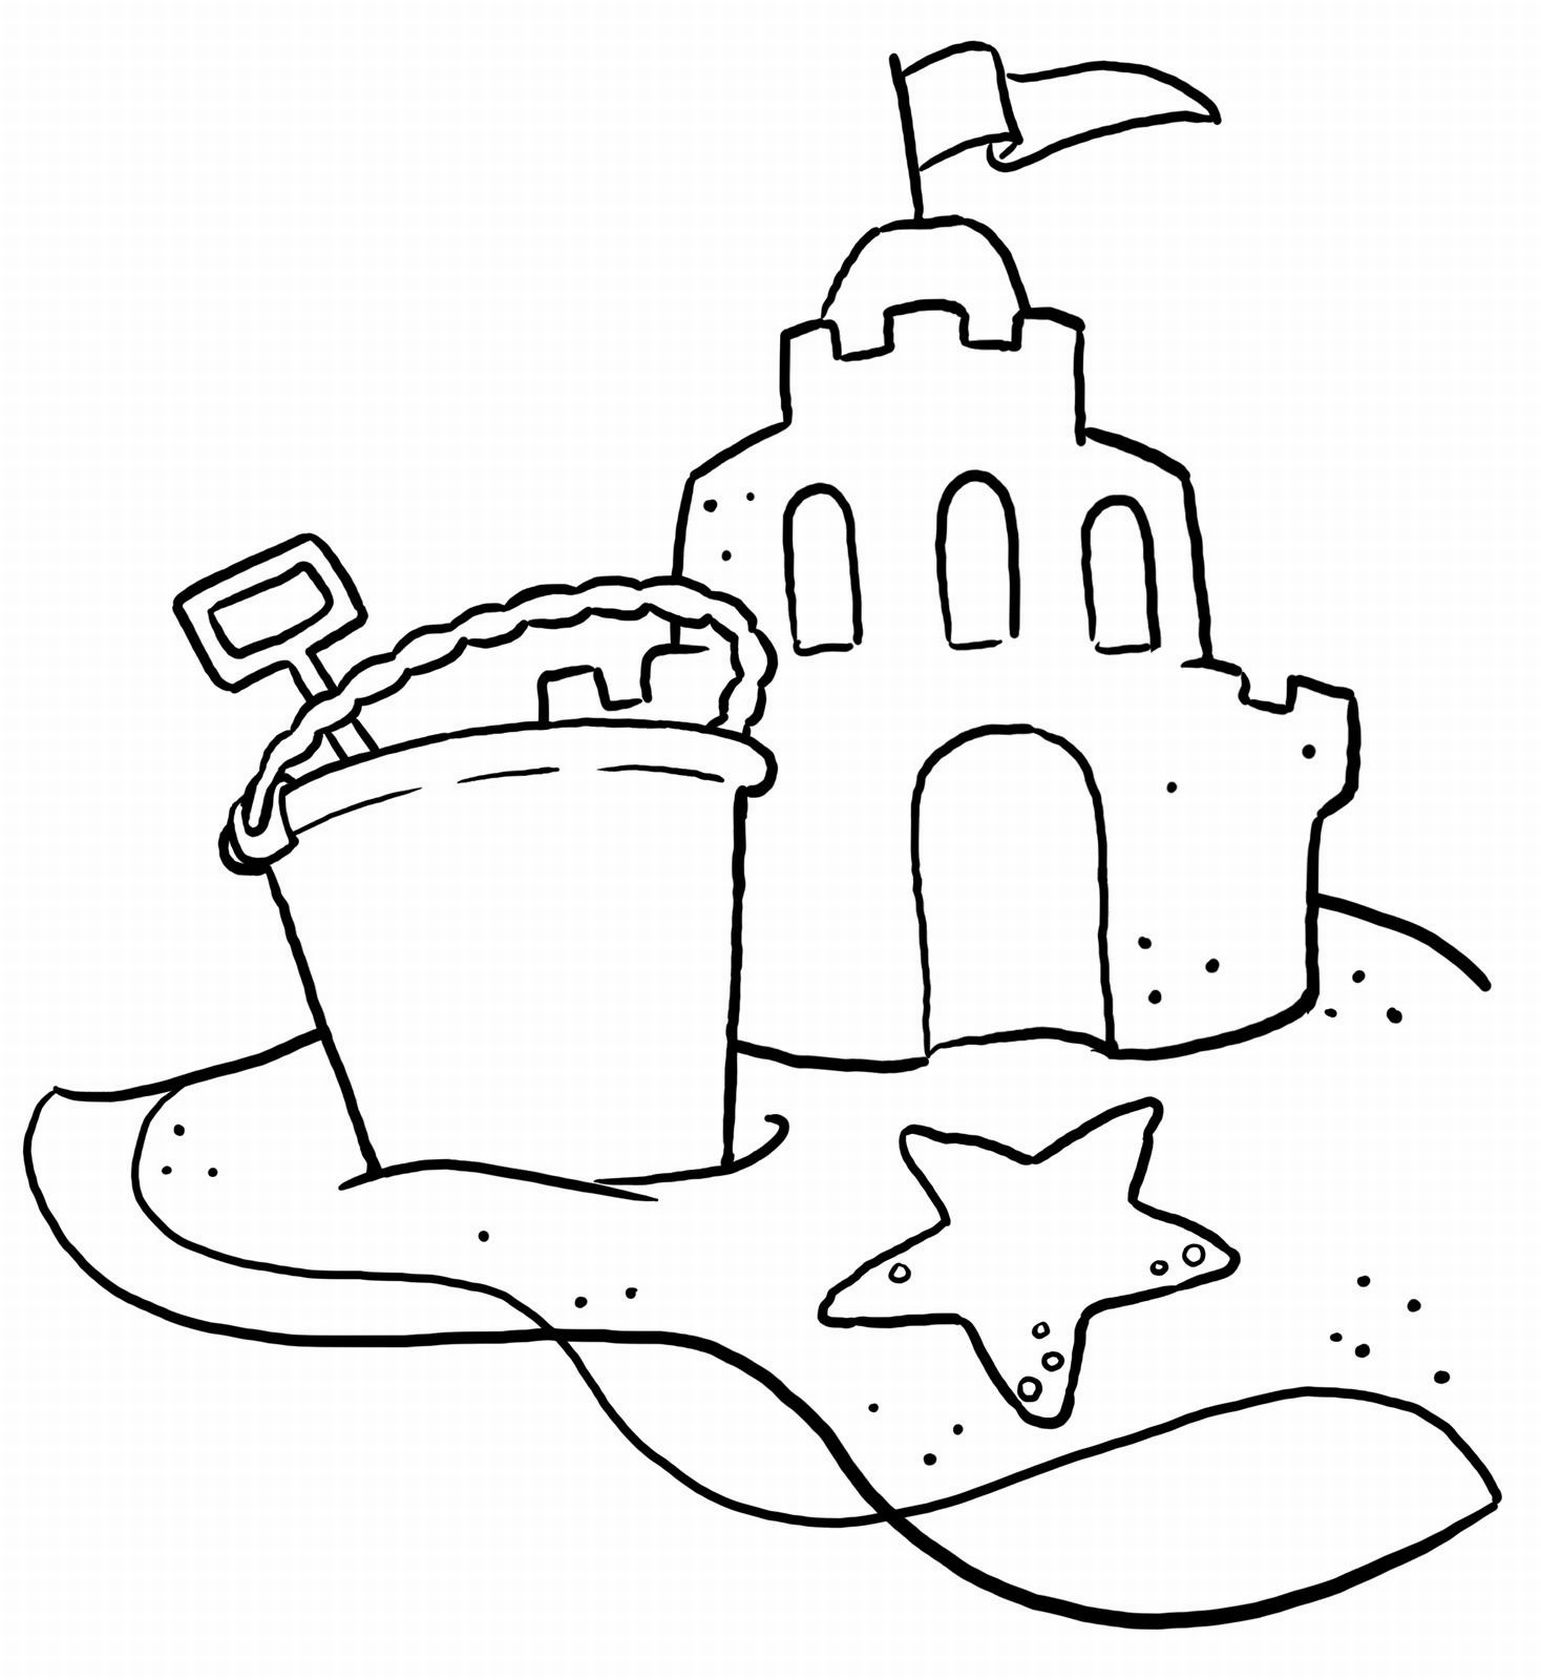 beach picture for coloring beach coloring pages to download and print for free coloring beach picture for